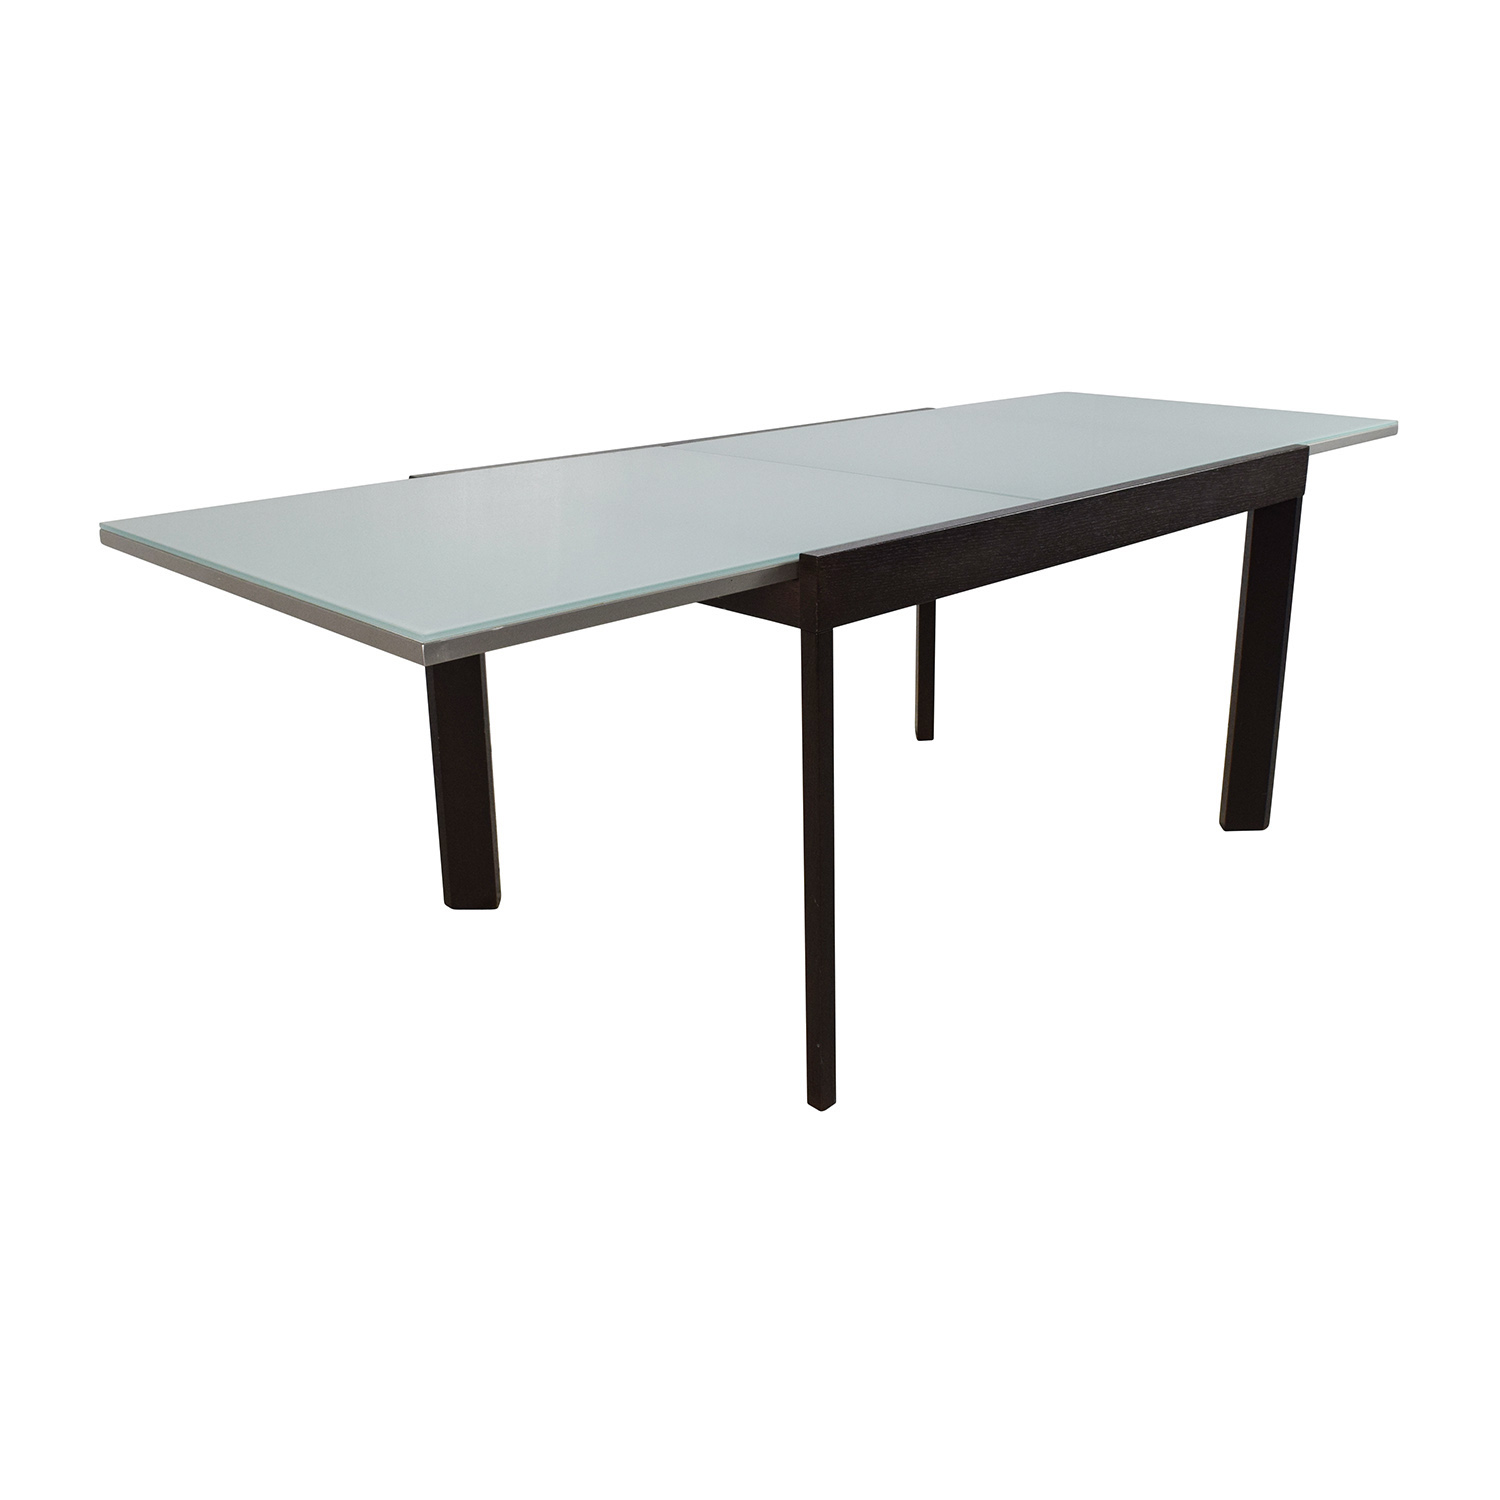 75 off calligaris calligaris extendable glass dining for Buy dining table